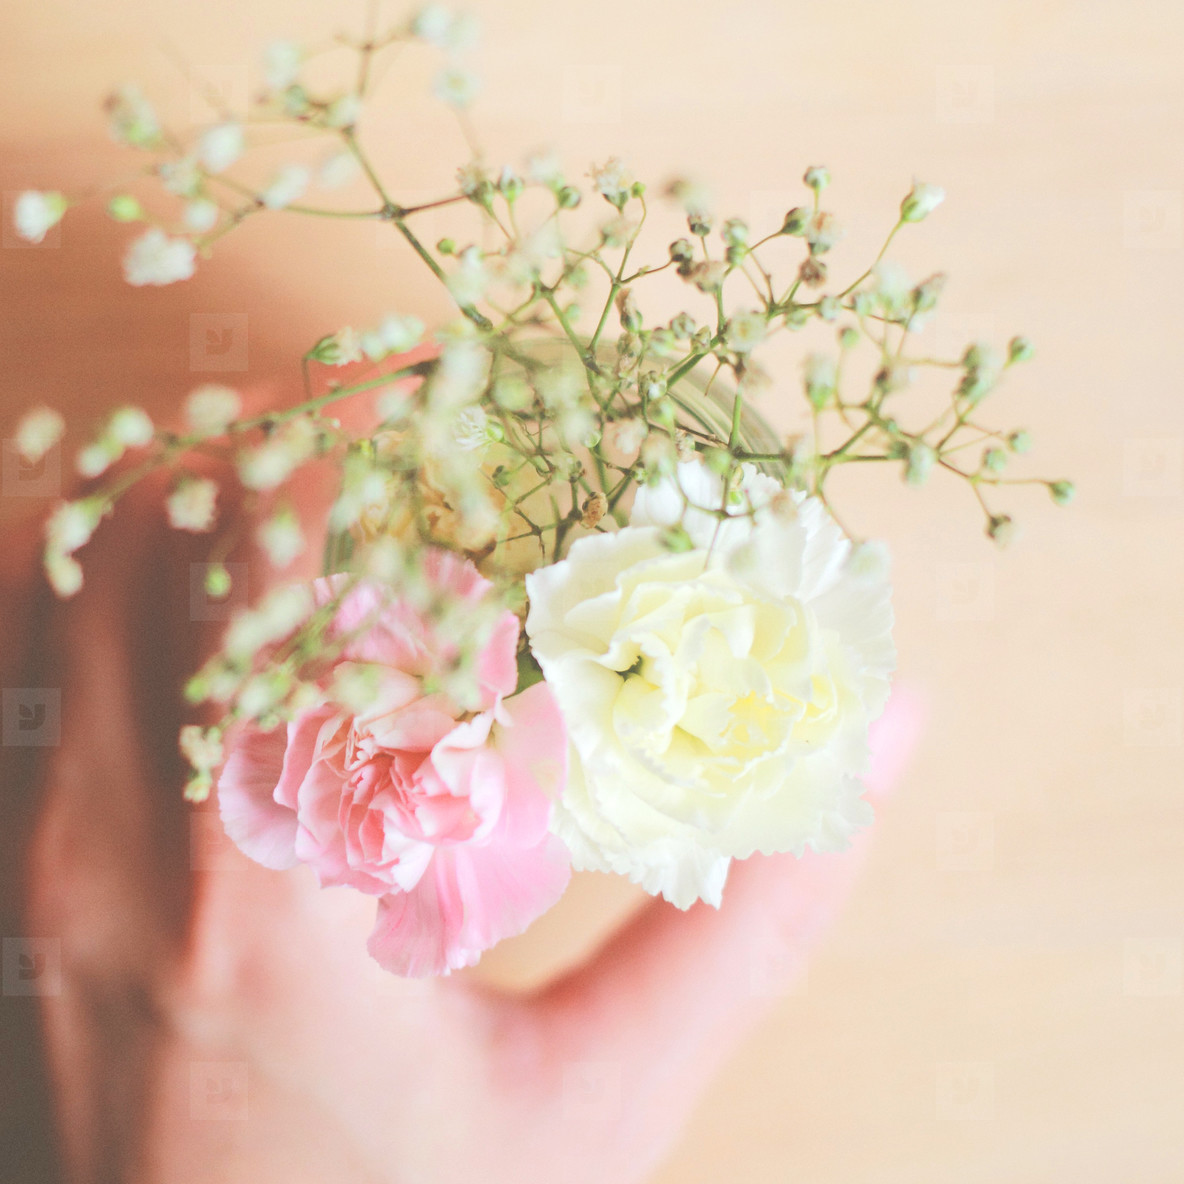 Woman hand holding flower